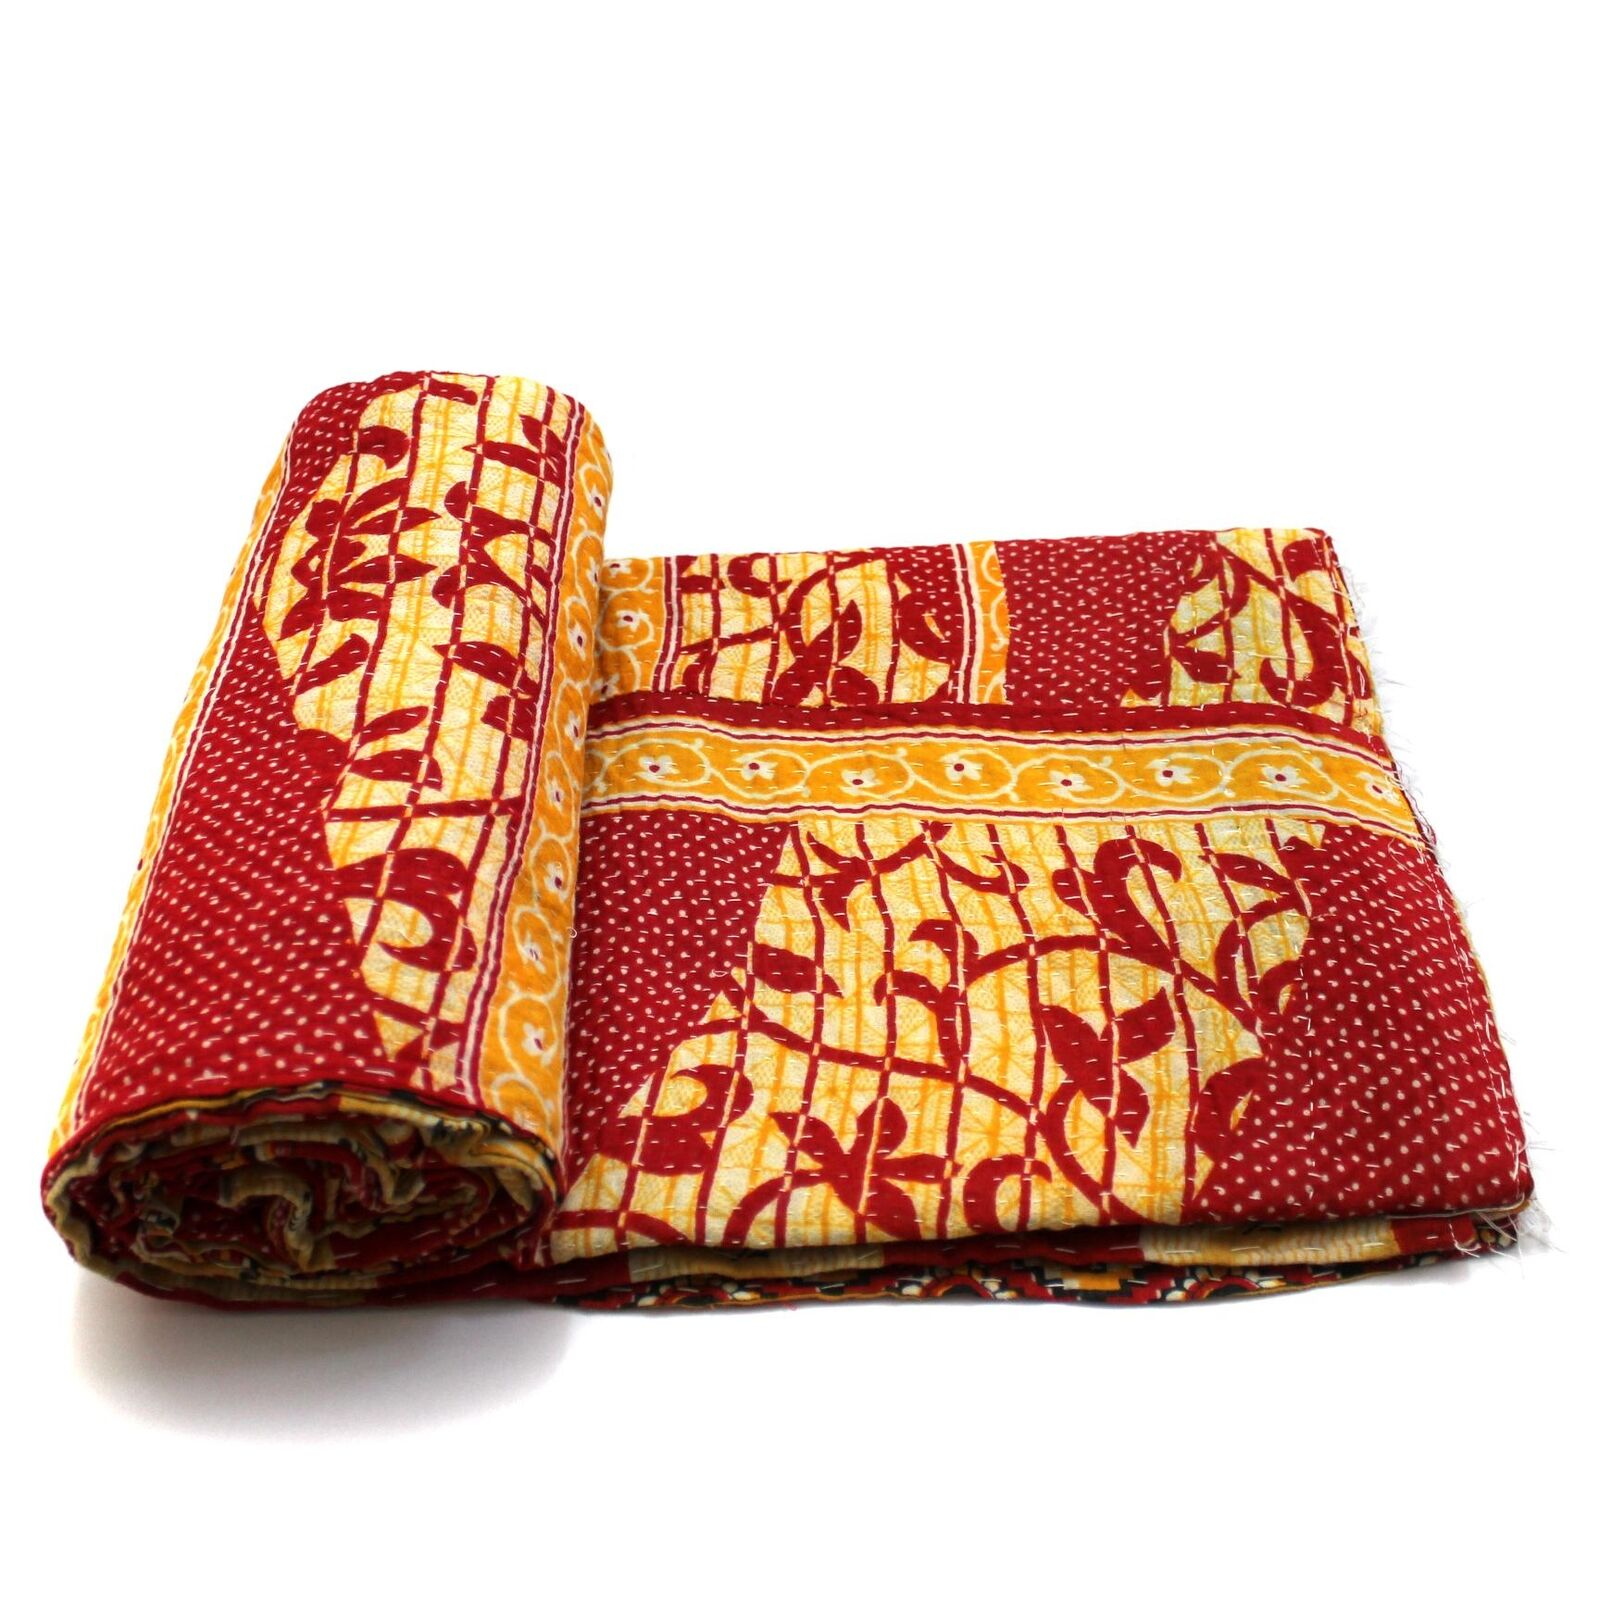 Toilettenbürste Tier Vintage Kantha Quilt Indian Handmade Bedspread Decorative Blanket